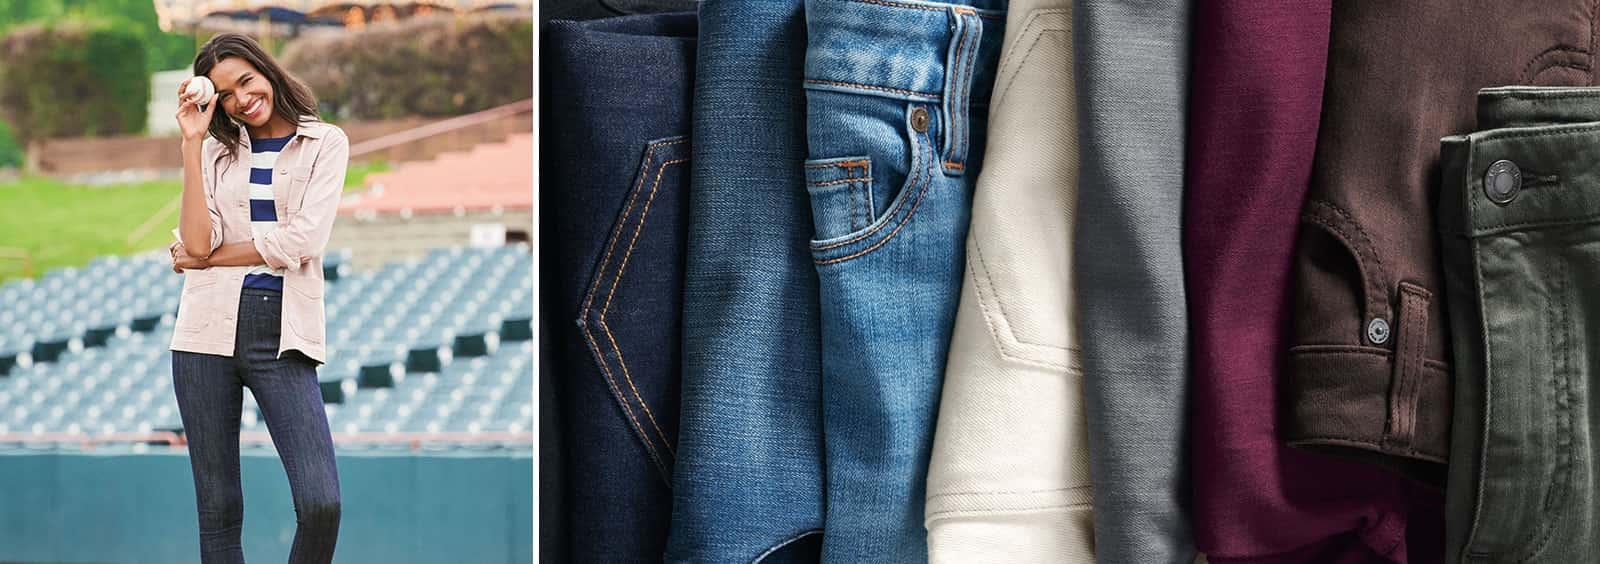 How a Good Pair of Jeans Can Change Your Life